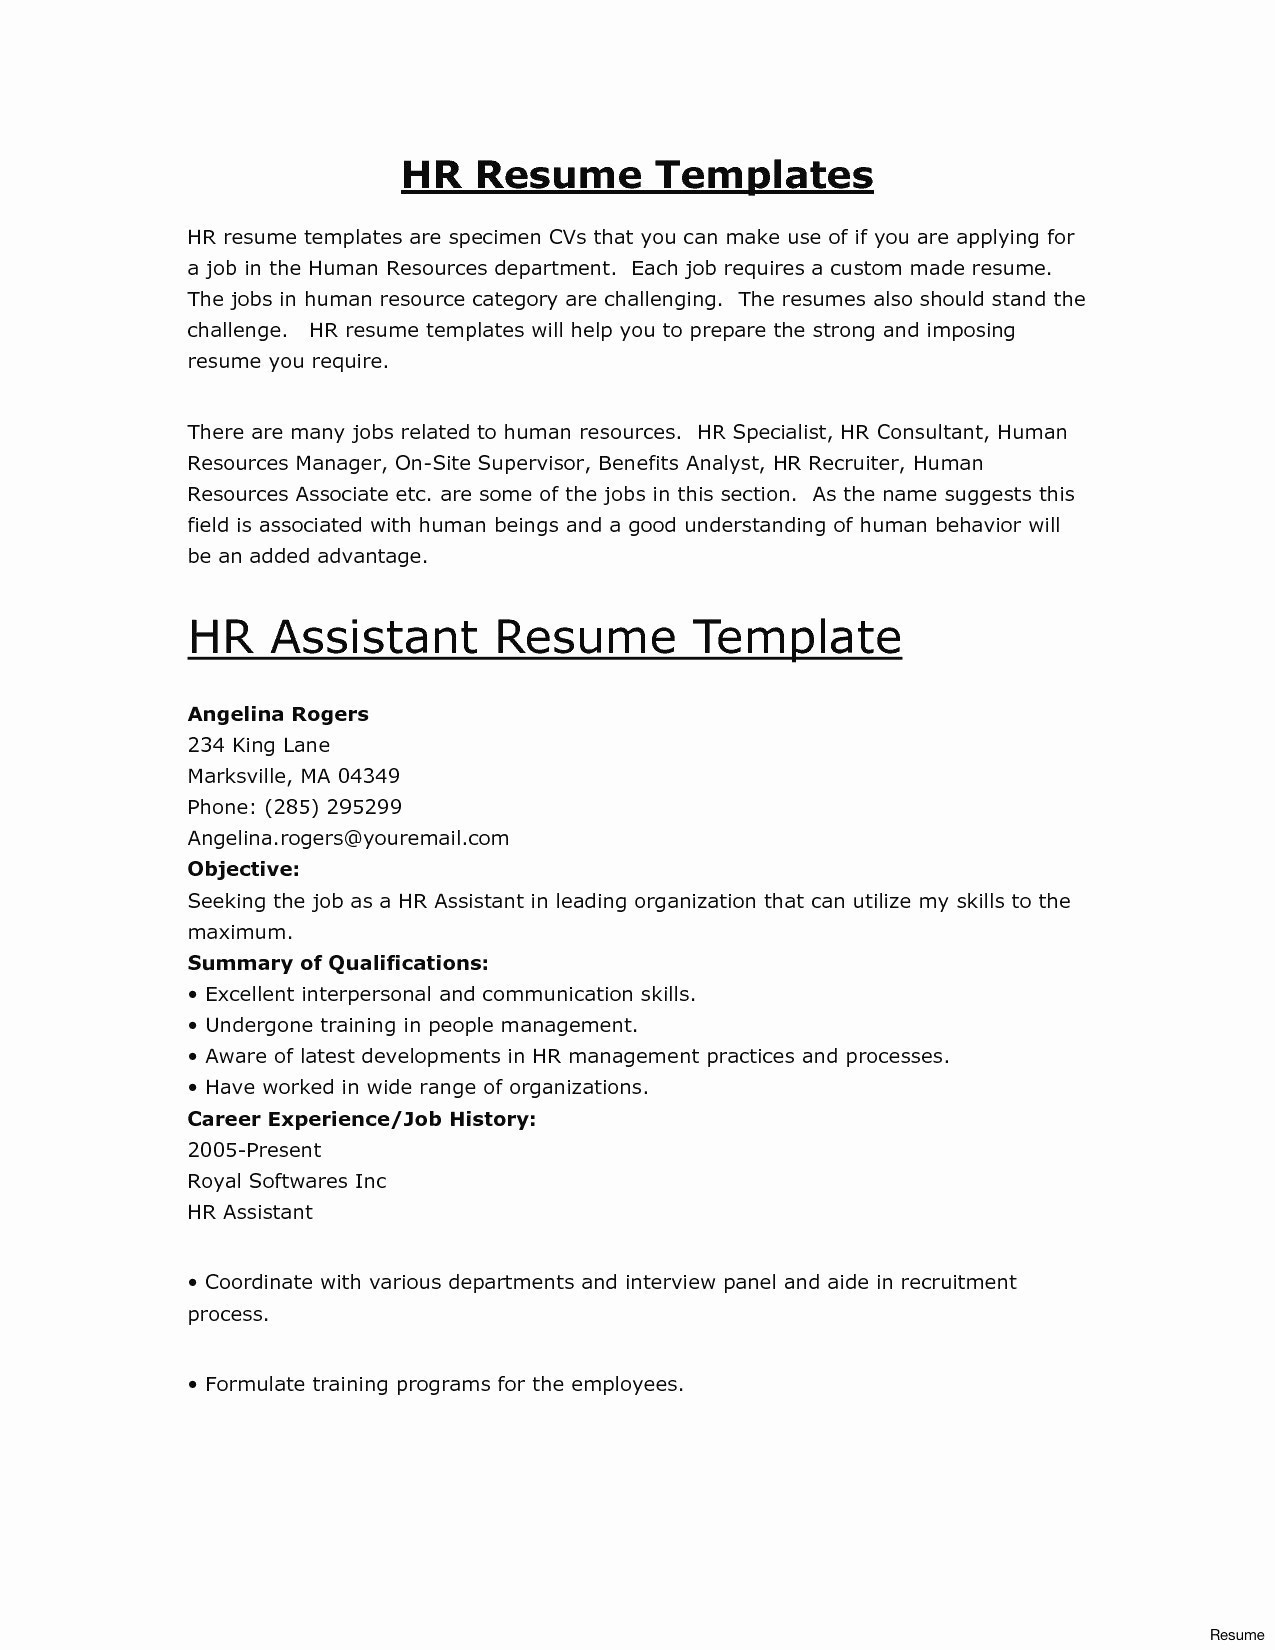 Search for Resumes - Fill Out Pdf form Windows Elegant Sample Pdf form Dice Resume Search